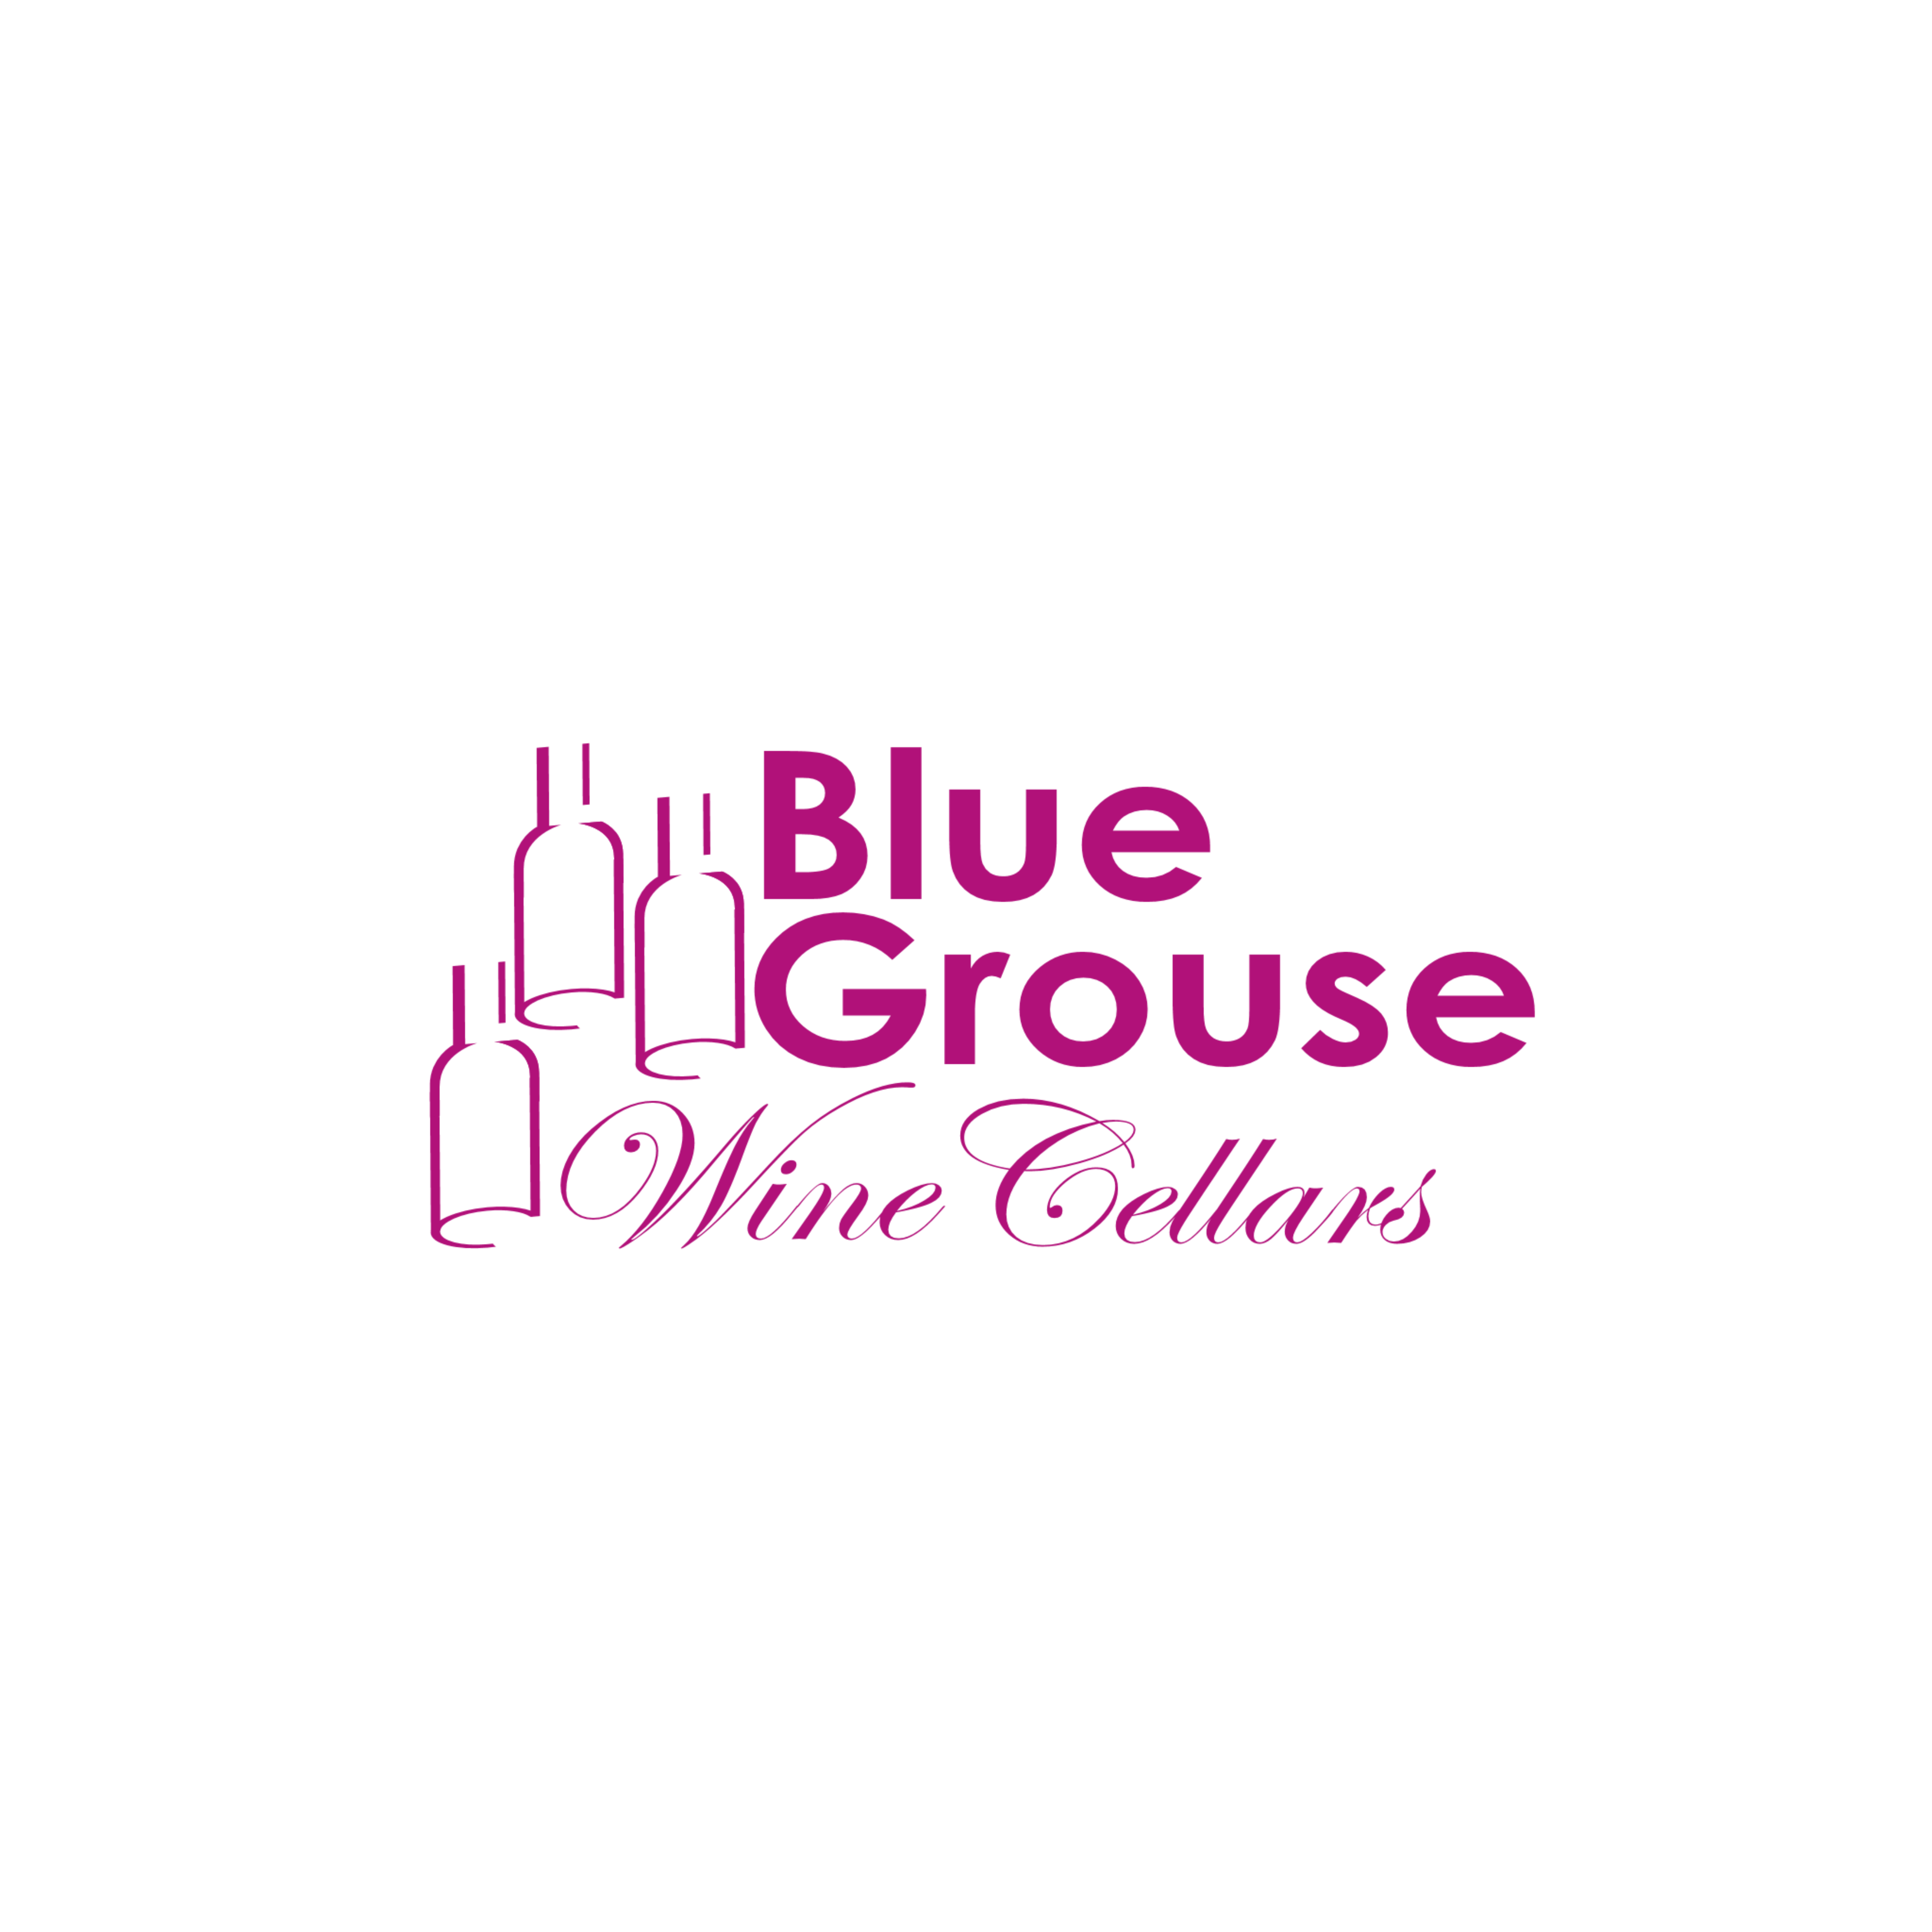 Logo Design by Ismail Adhi Wibowo - Entry No. 4 in the Logo Design Contest Creative Logo Design for Blue Grouse Wine Cellars.